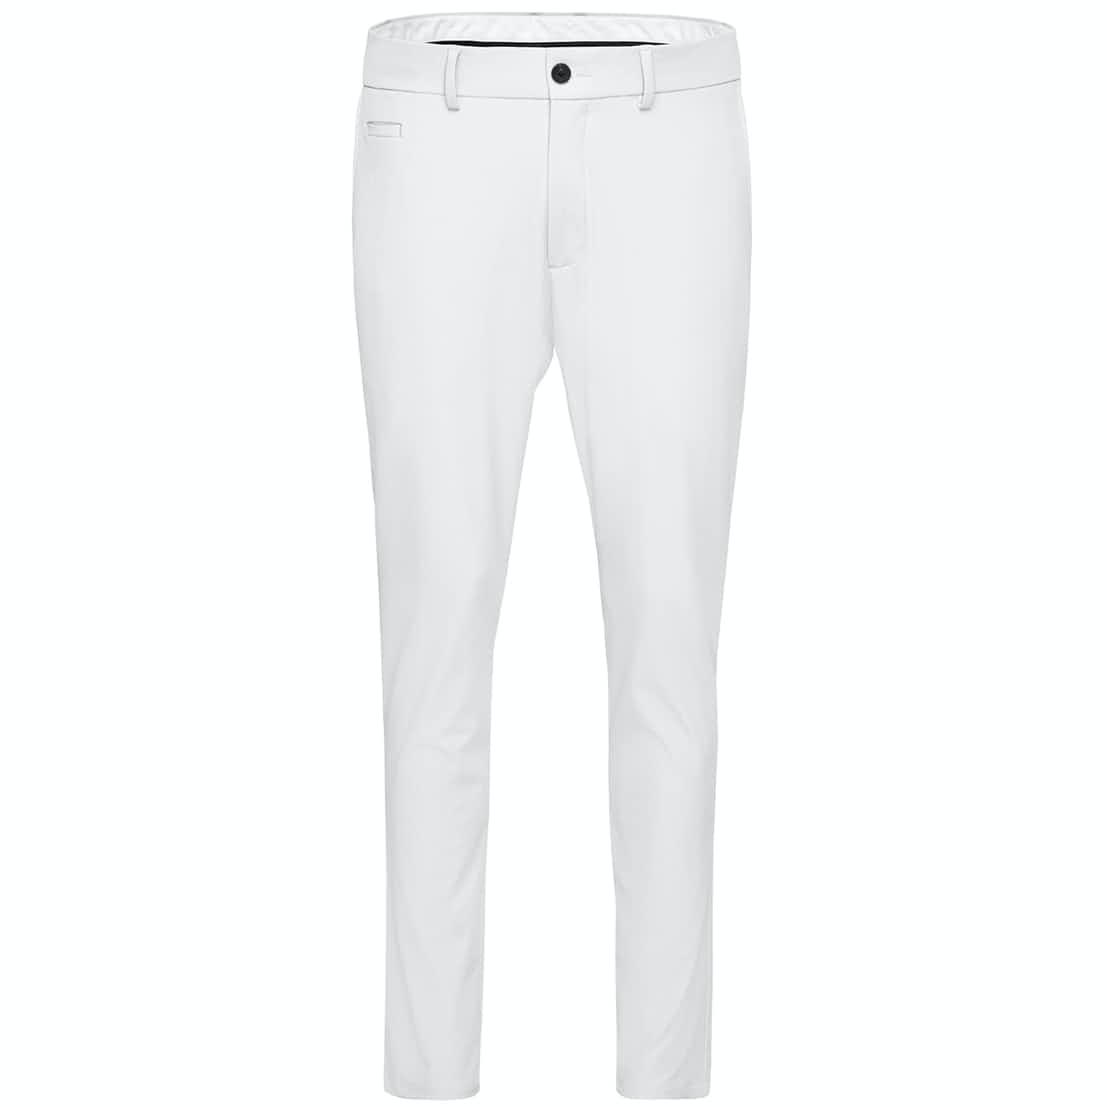 Ike Tailored Fit Trousers White - 2020